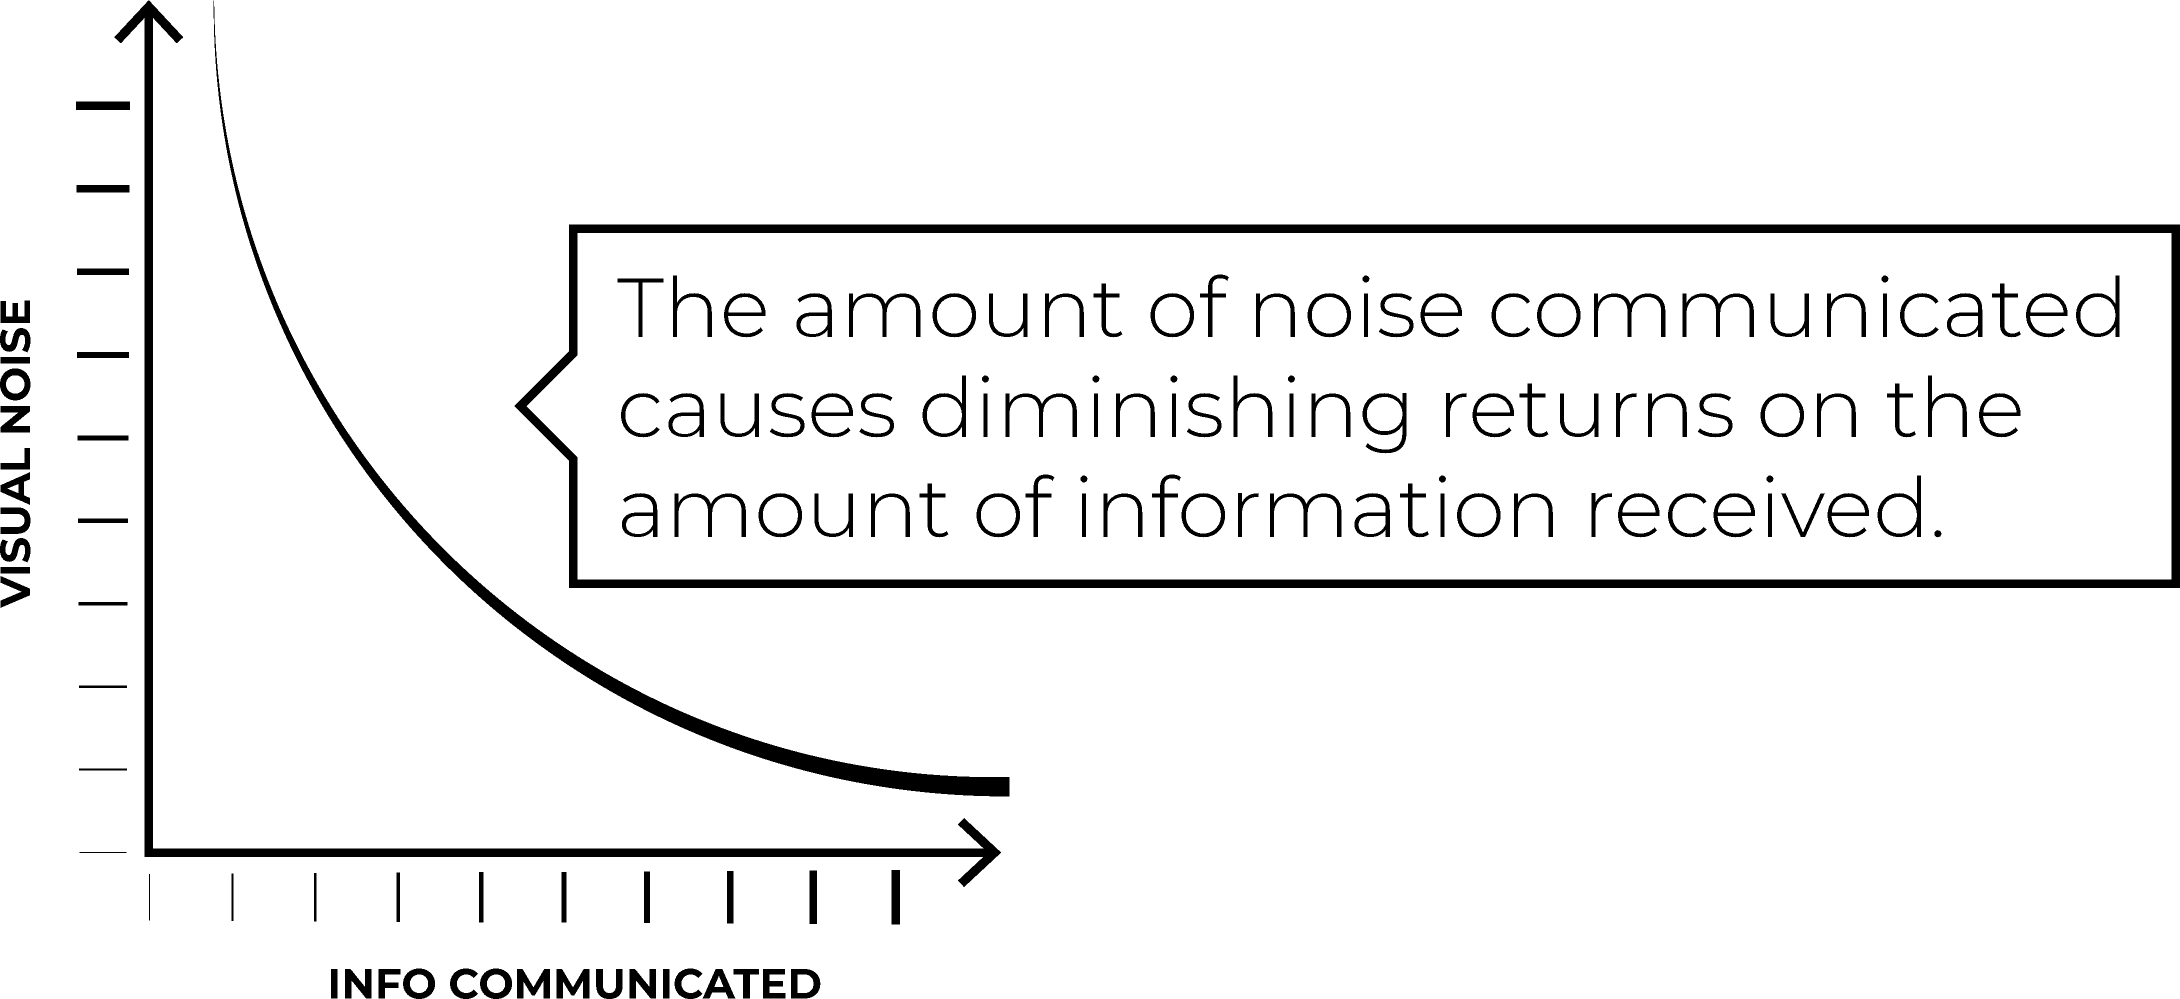 The amount of noise communicated causes deminishing returns on the amount of information received.